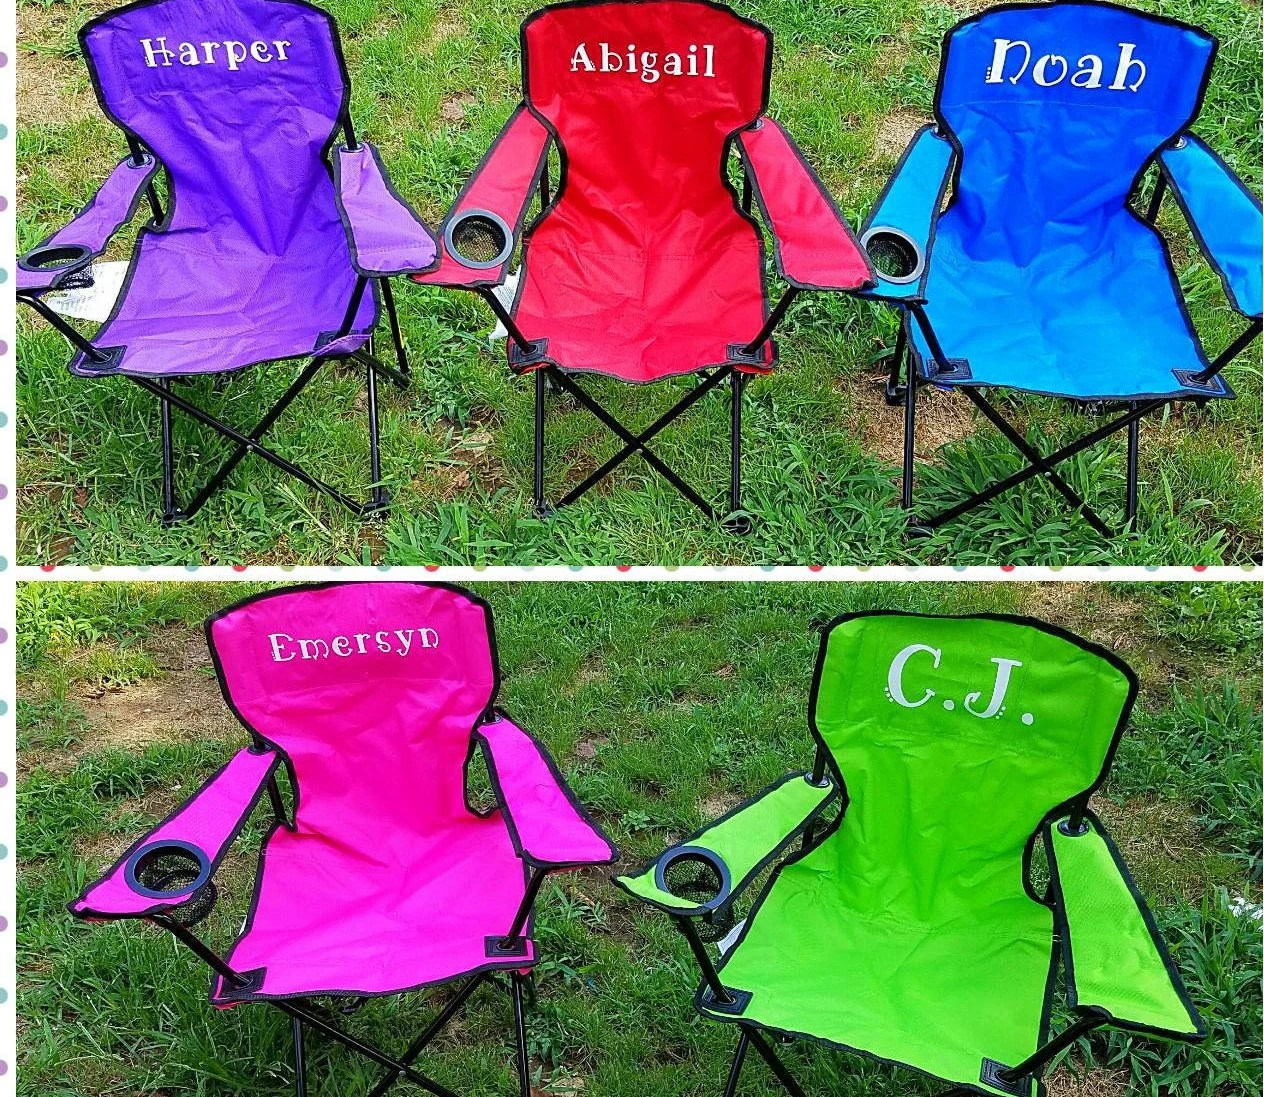 kids outdoor chair hanging gumtree sydney desks tables chairs etsy in camping canvas beach